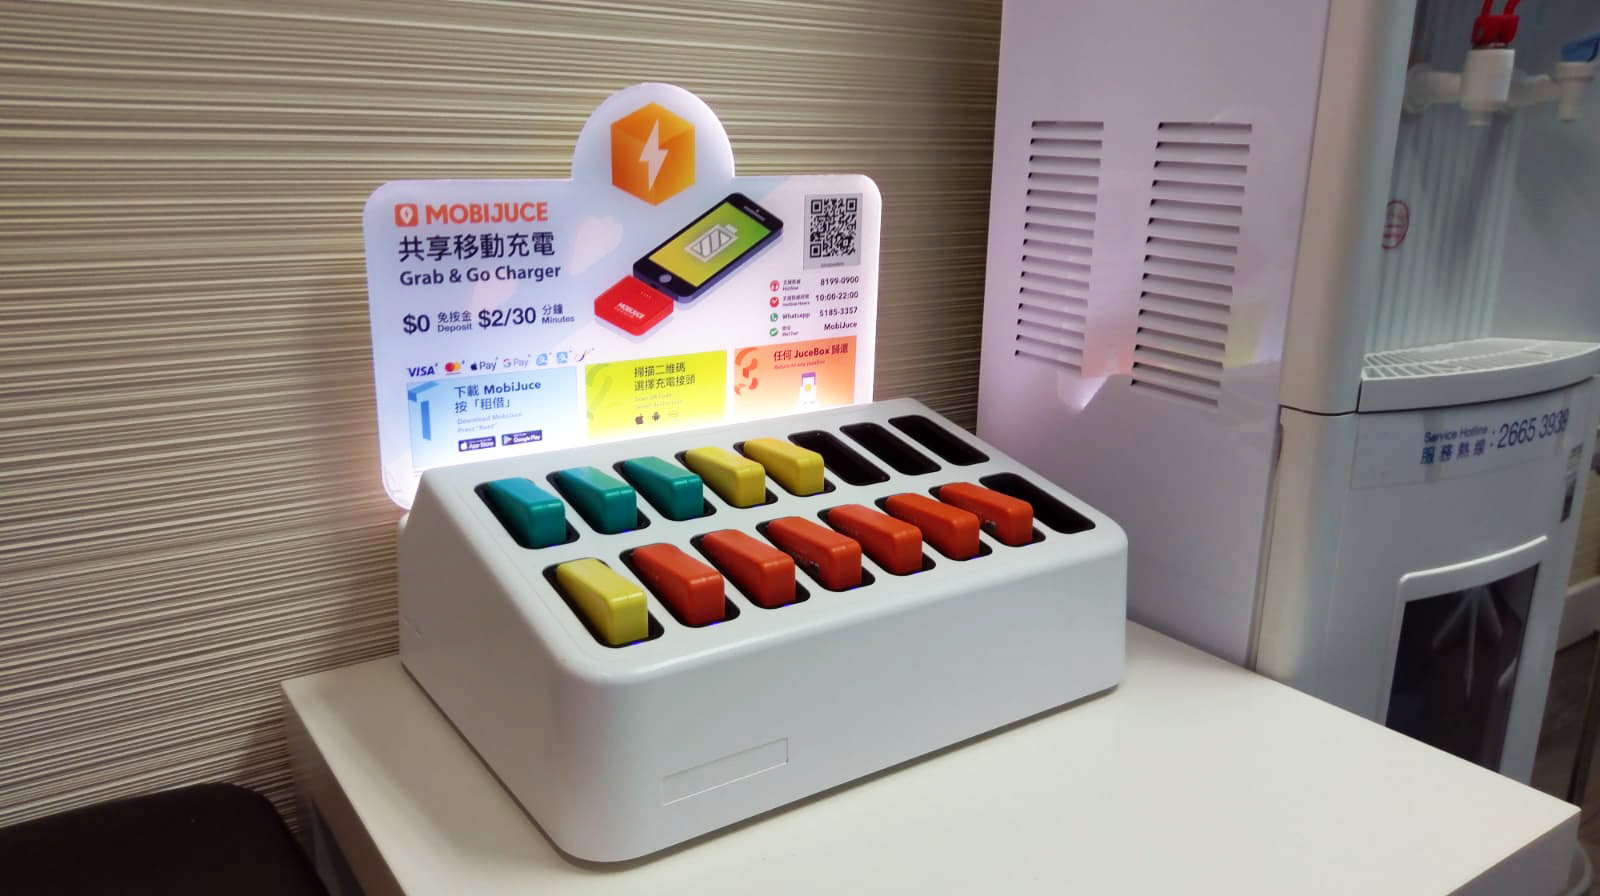 The New Power Bank and Mobile Charging Rental Service in Tin